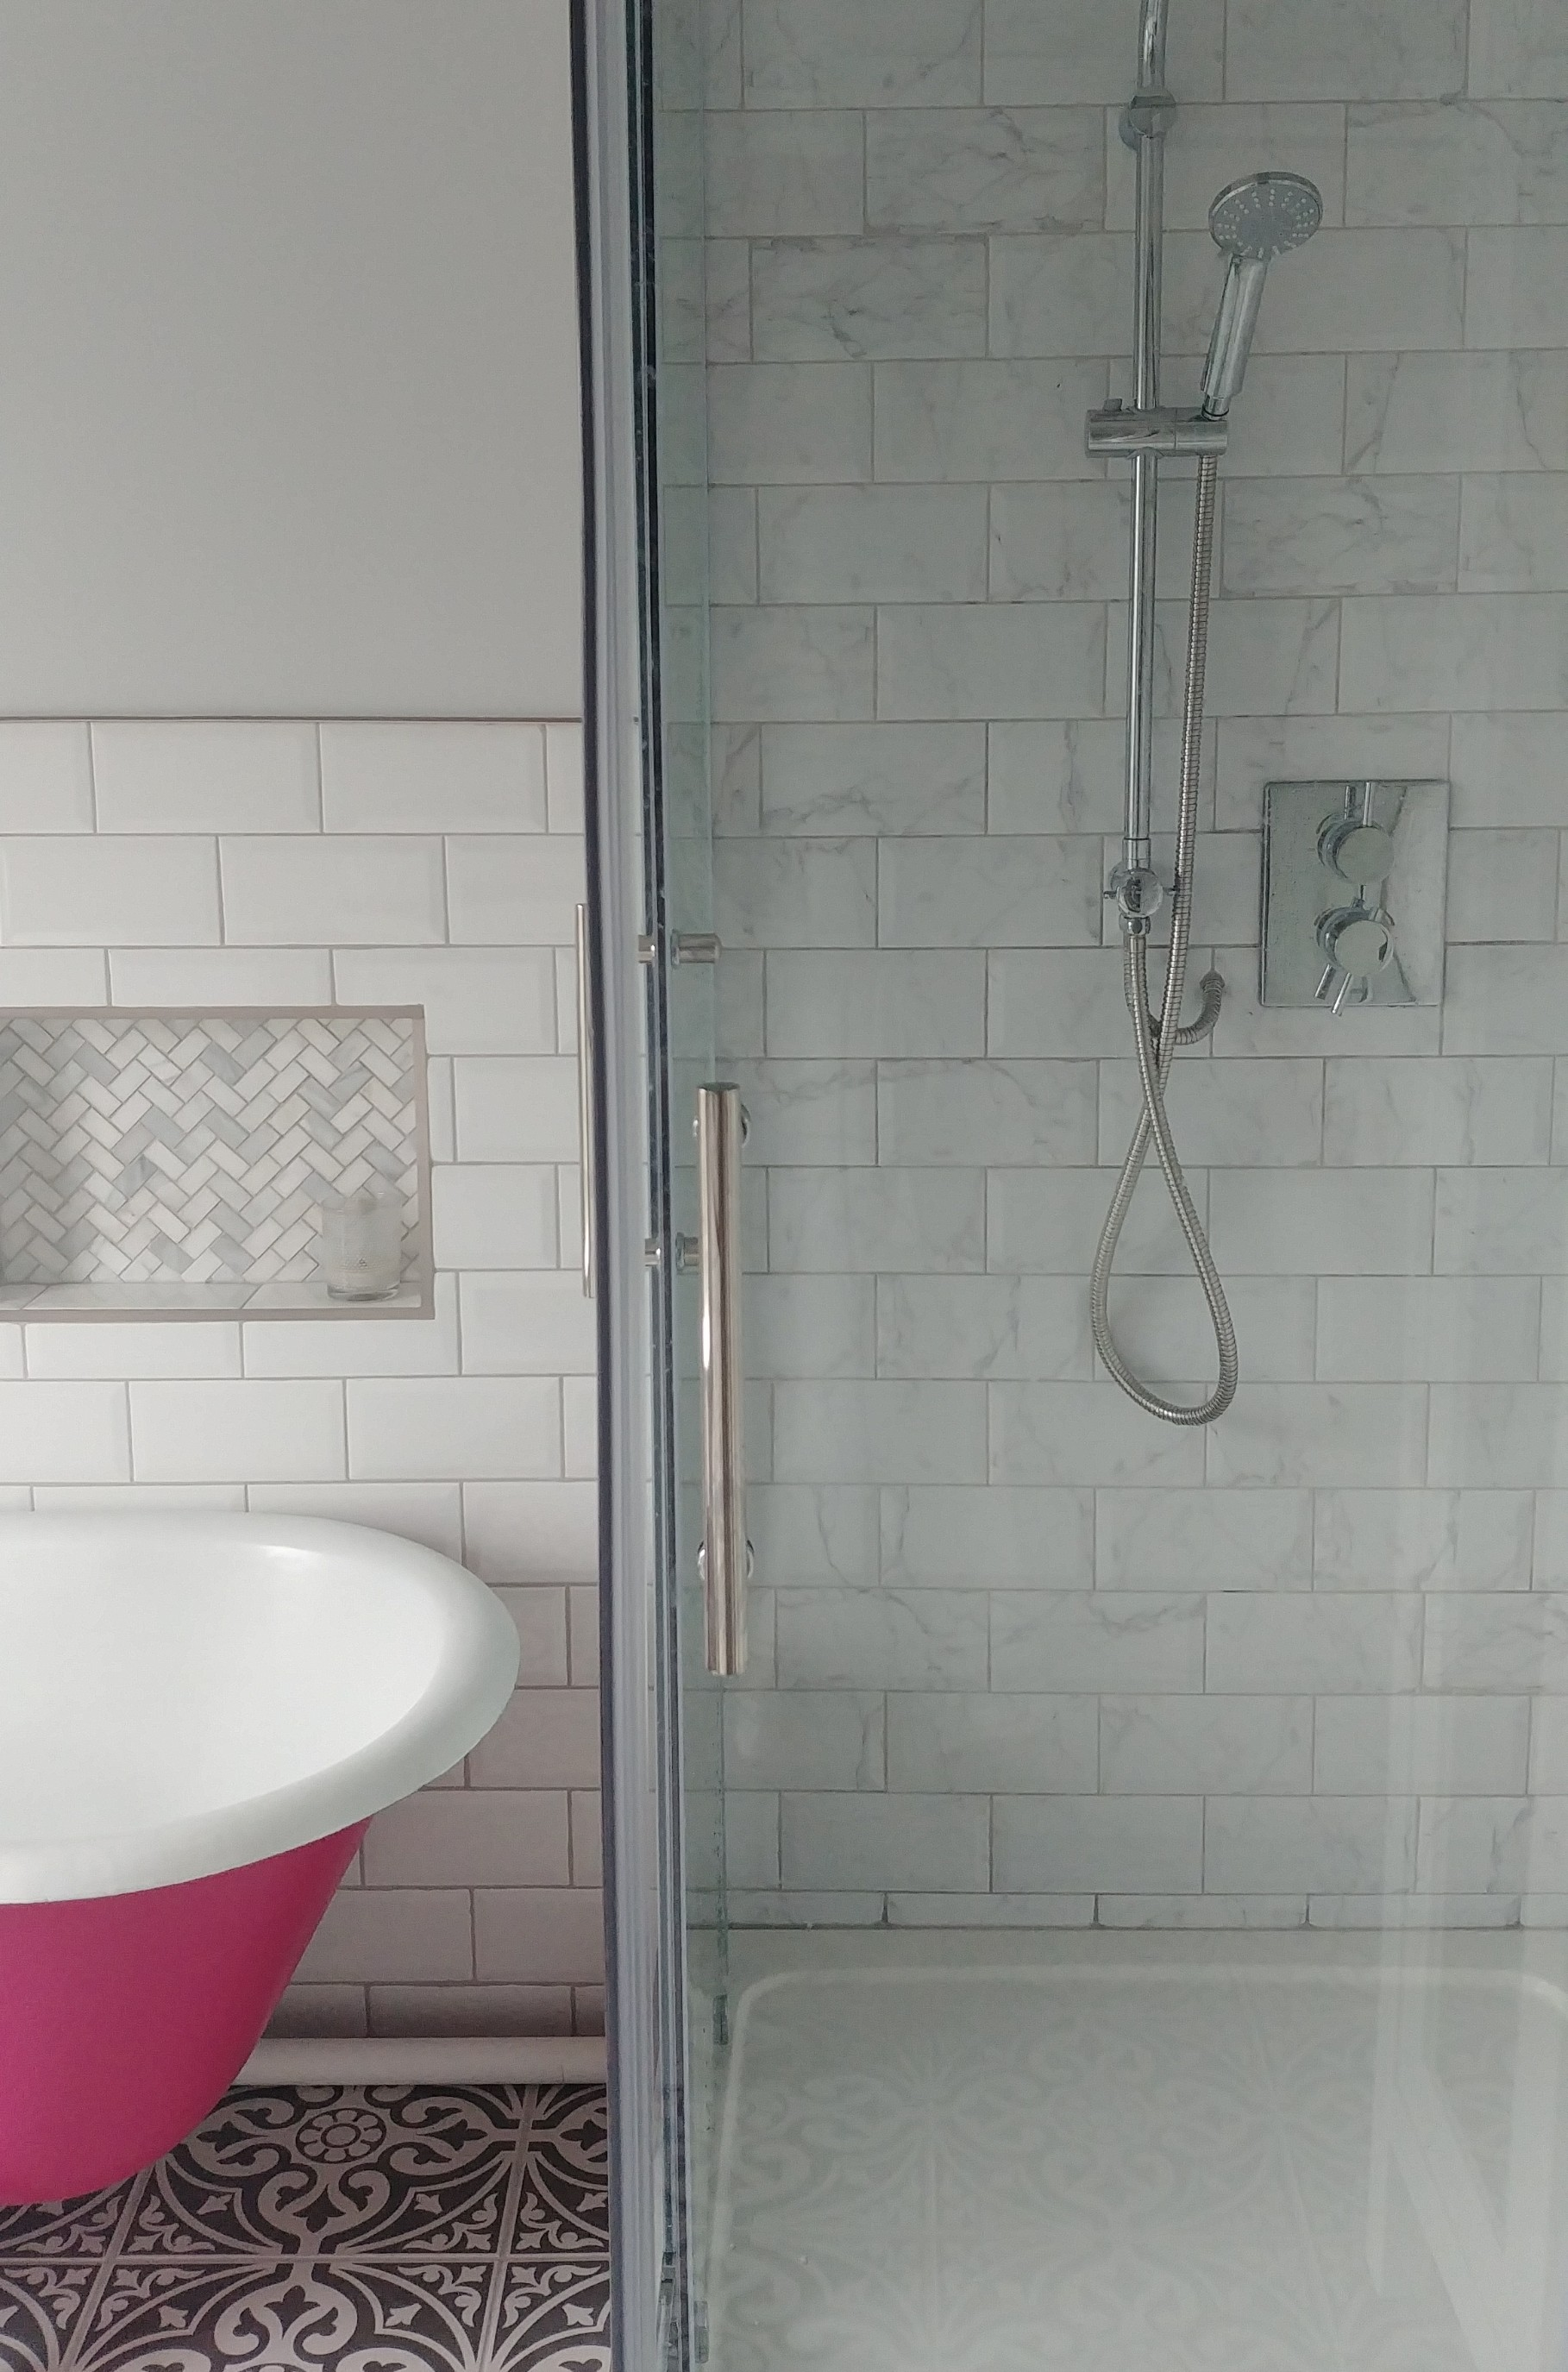 I matched up the white metro on the left with the faux marble within the shower enclosure.